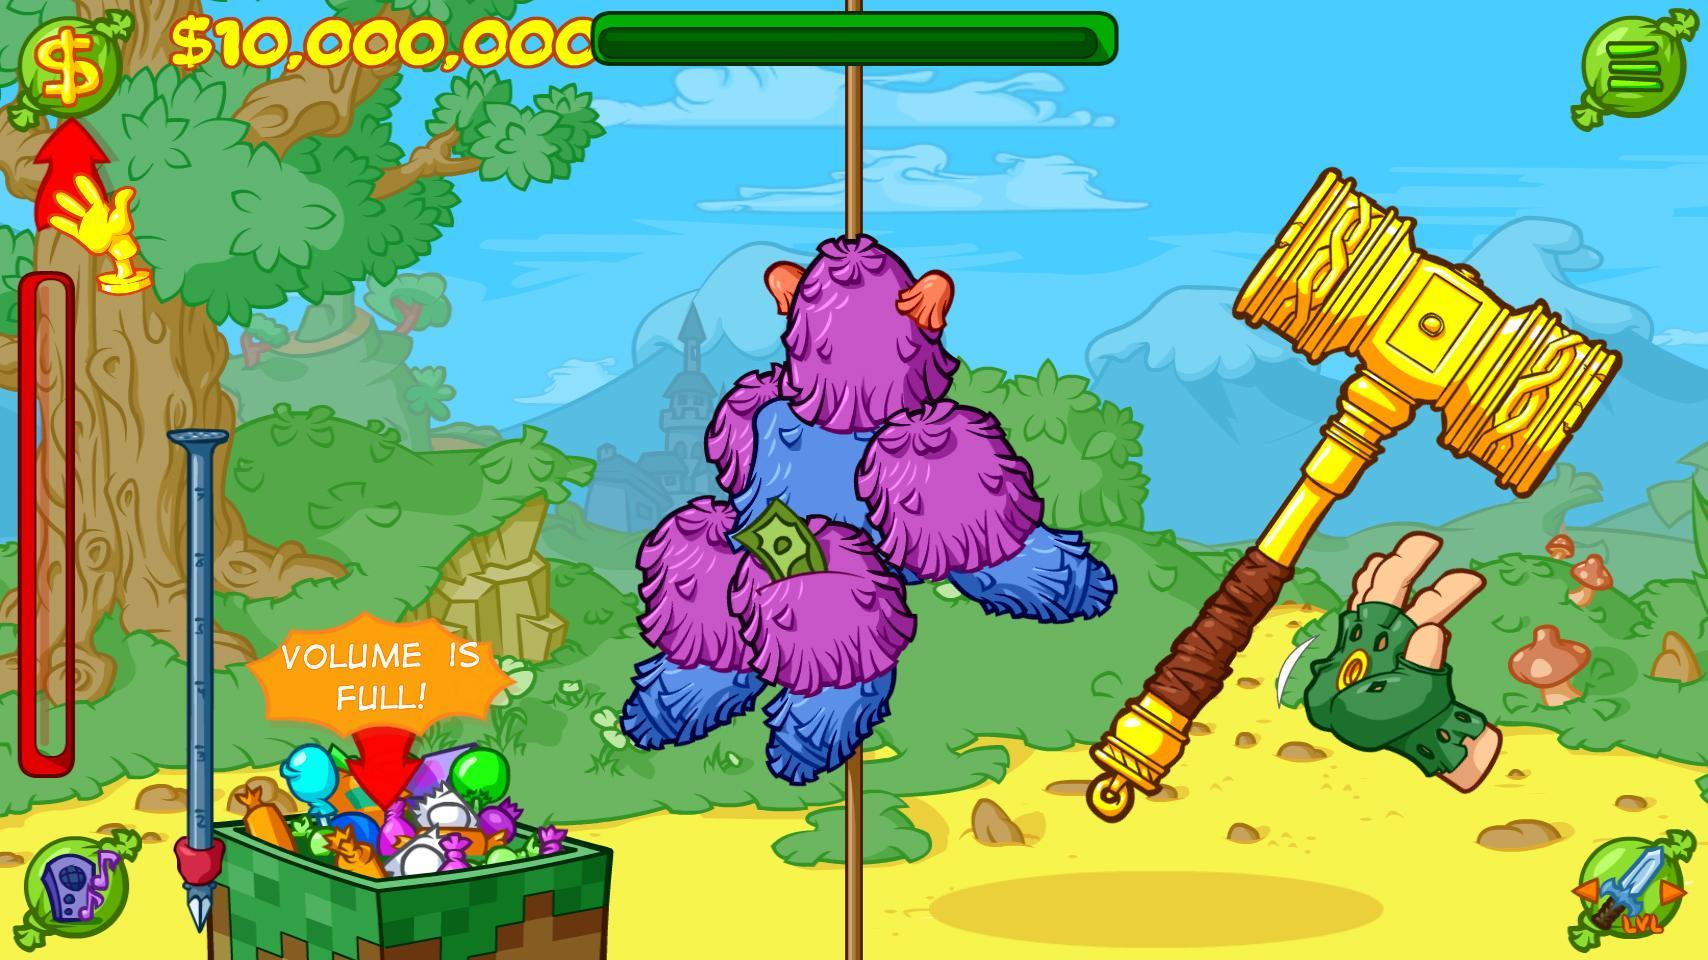 Pinata Hunter 4 for Android - APK Download